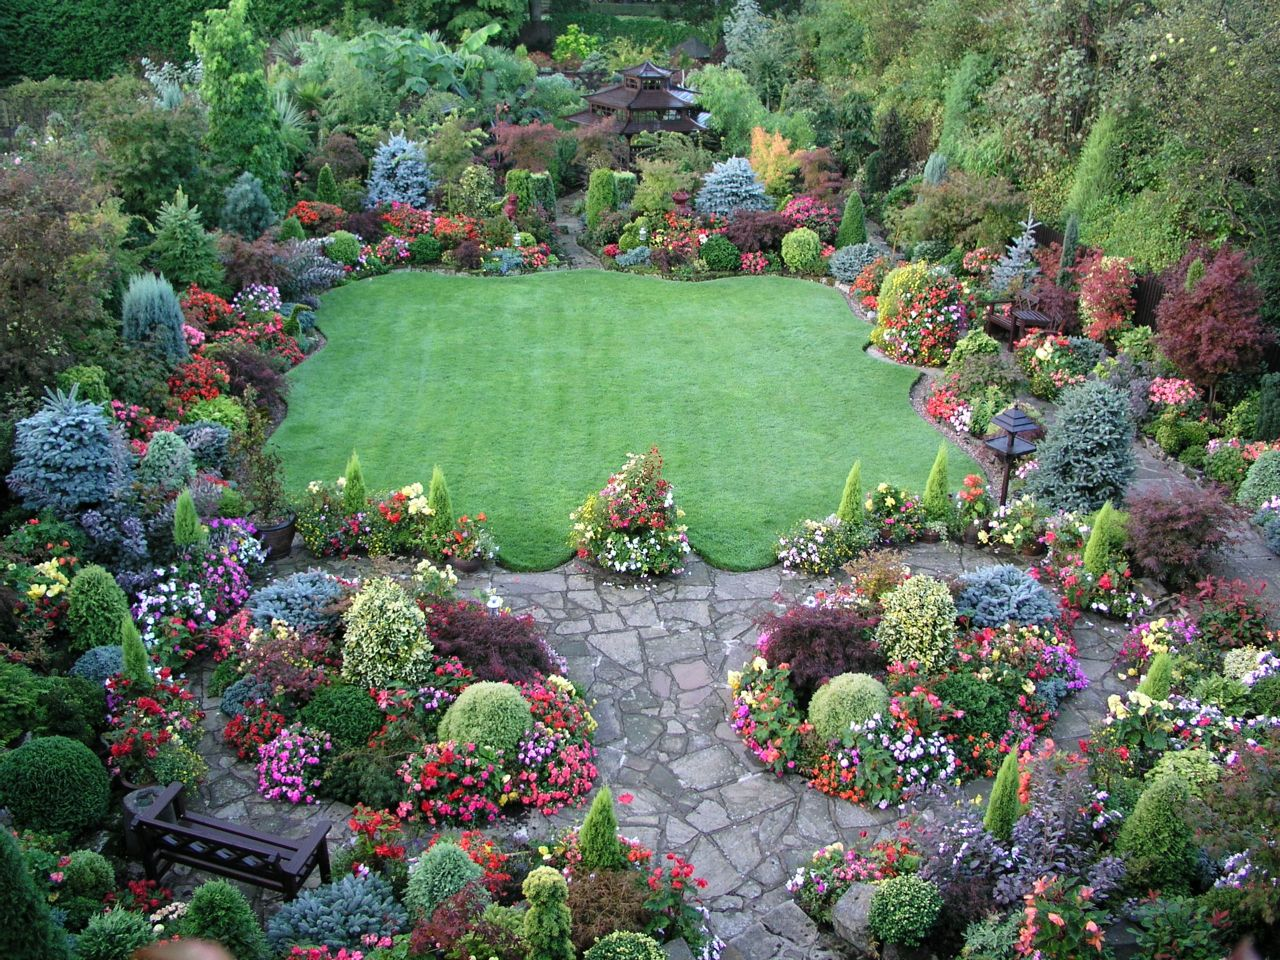 Nice combo of open space and tight groupings of perennials shrubs